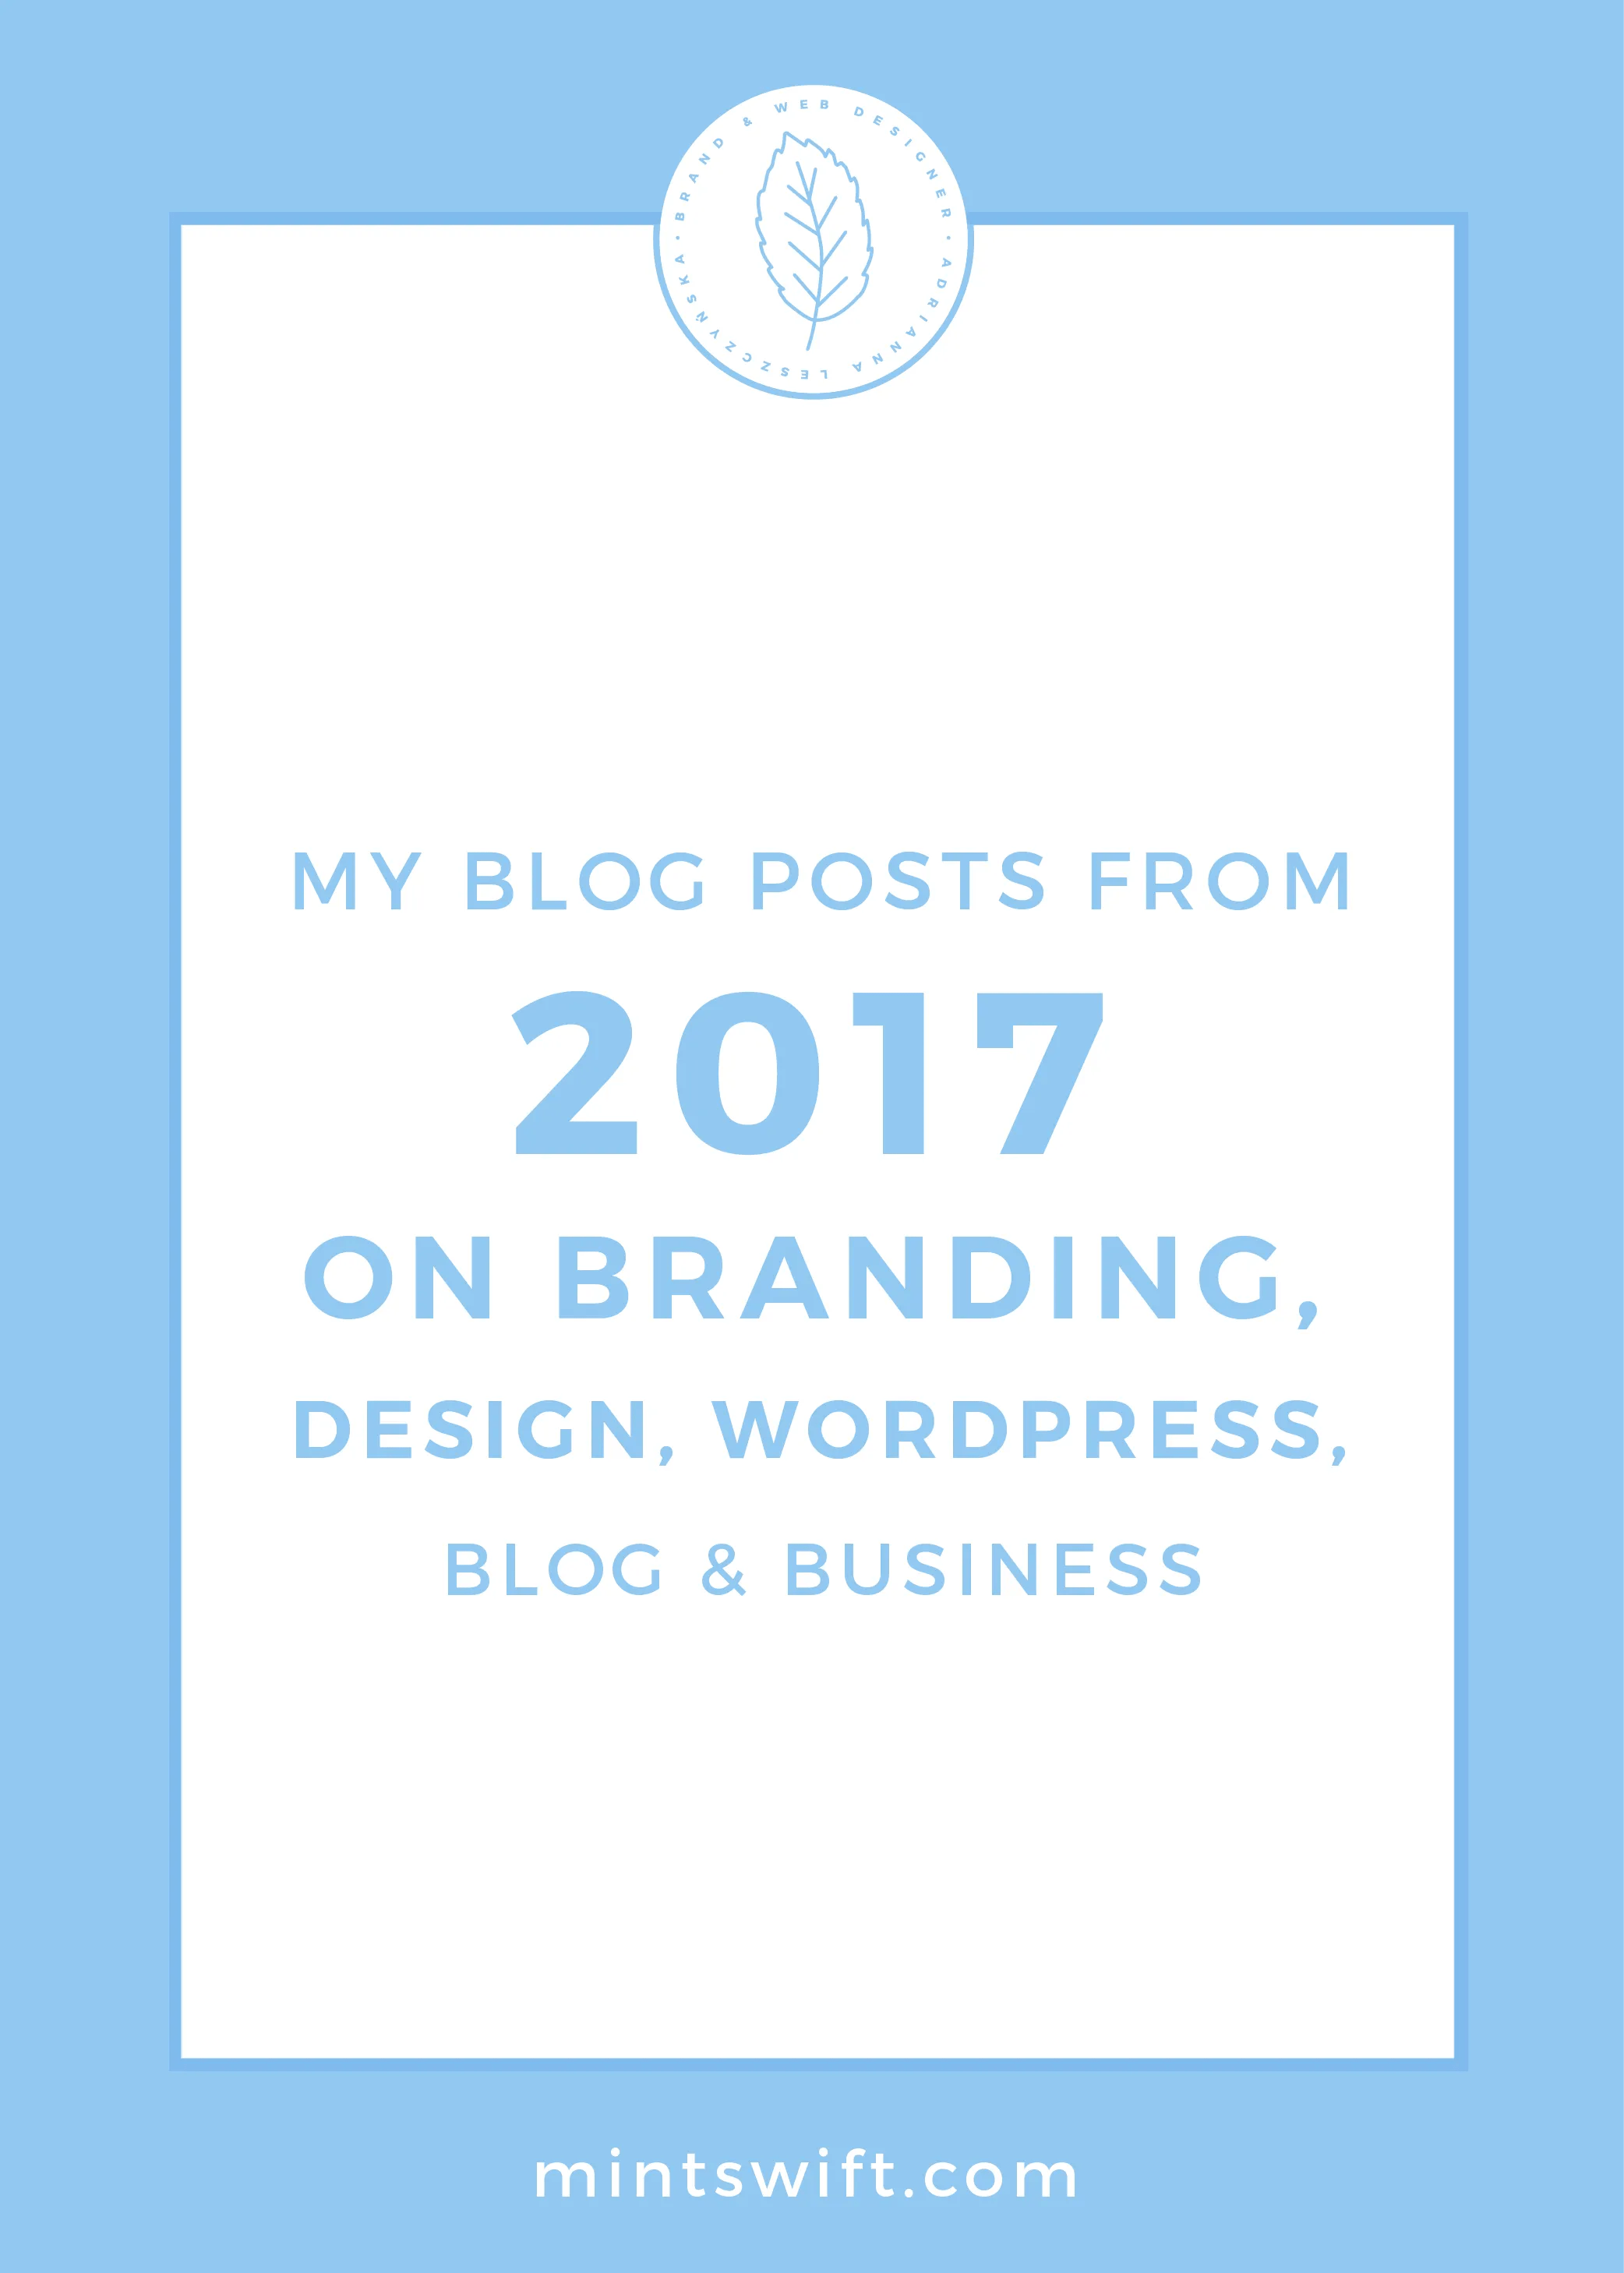 My Blog Posts from 2017 on Branding, Design, WordPress, Business & Blogging by MintSwift